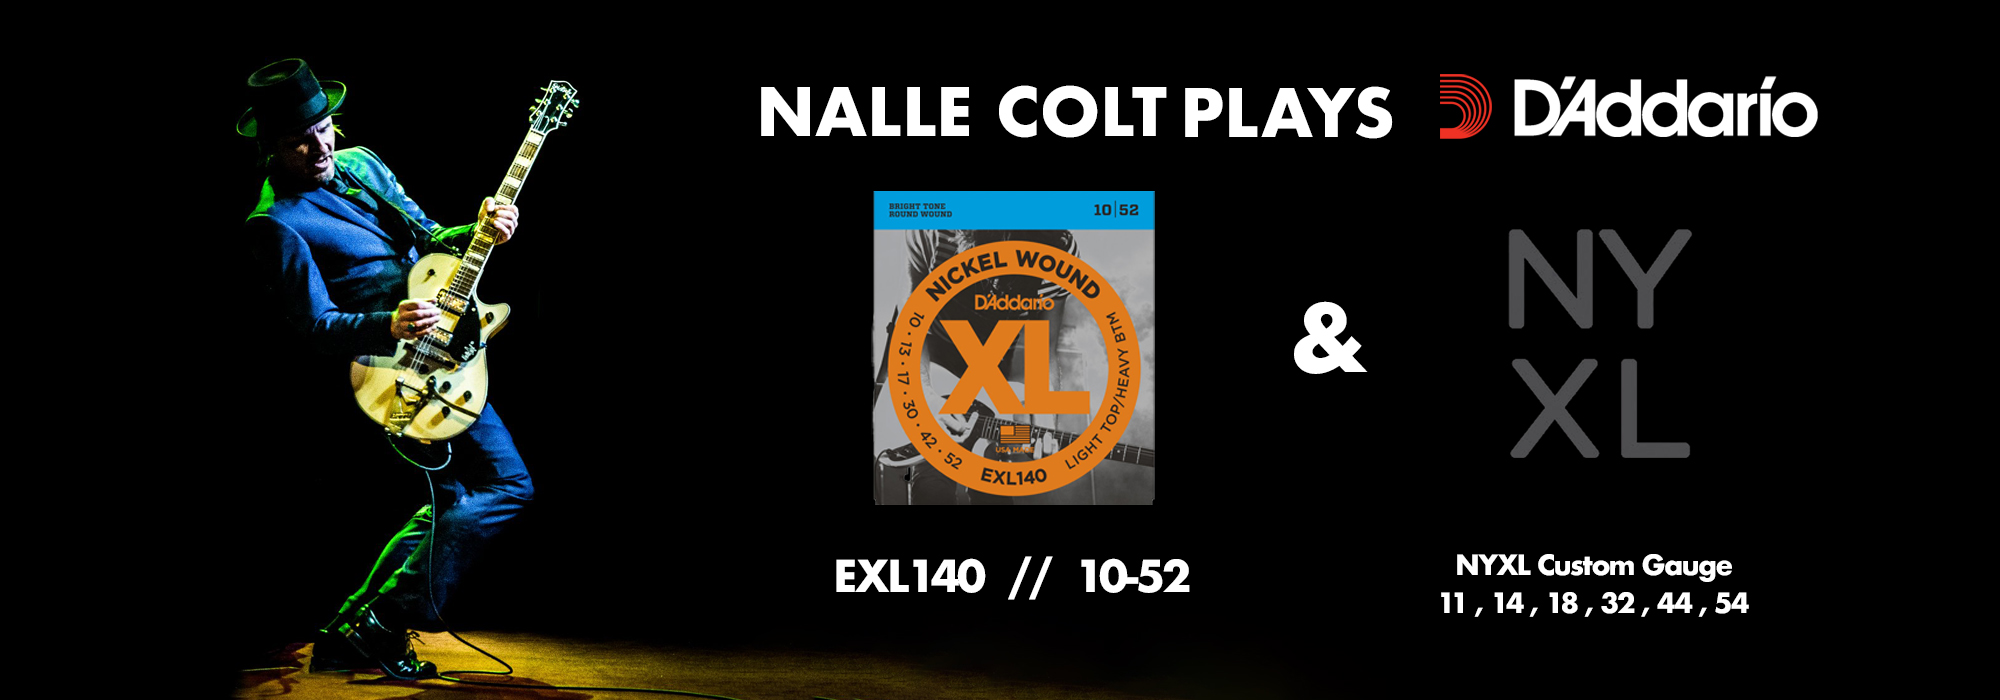 Nalle Colt of Vintage Trouble uses D'Addario Electric Guitar Strings